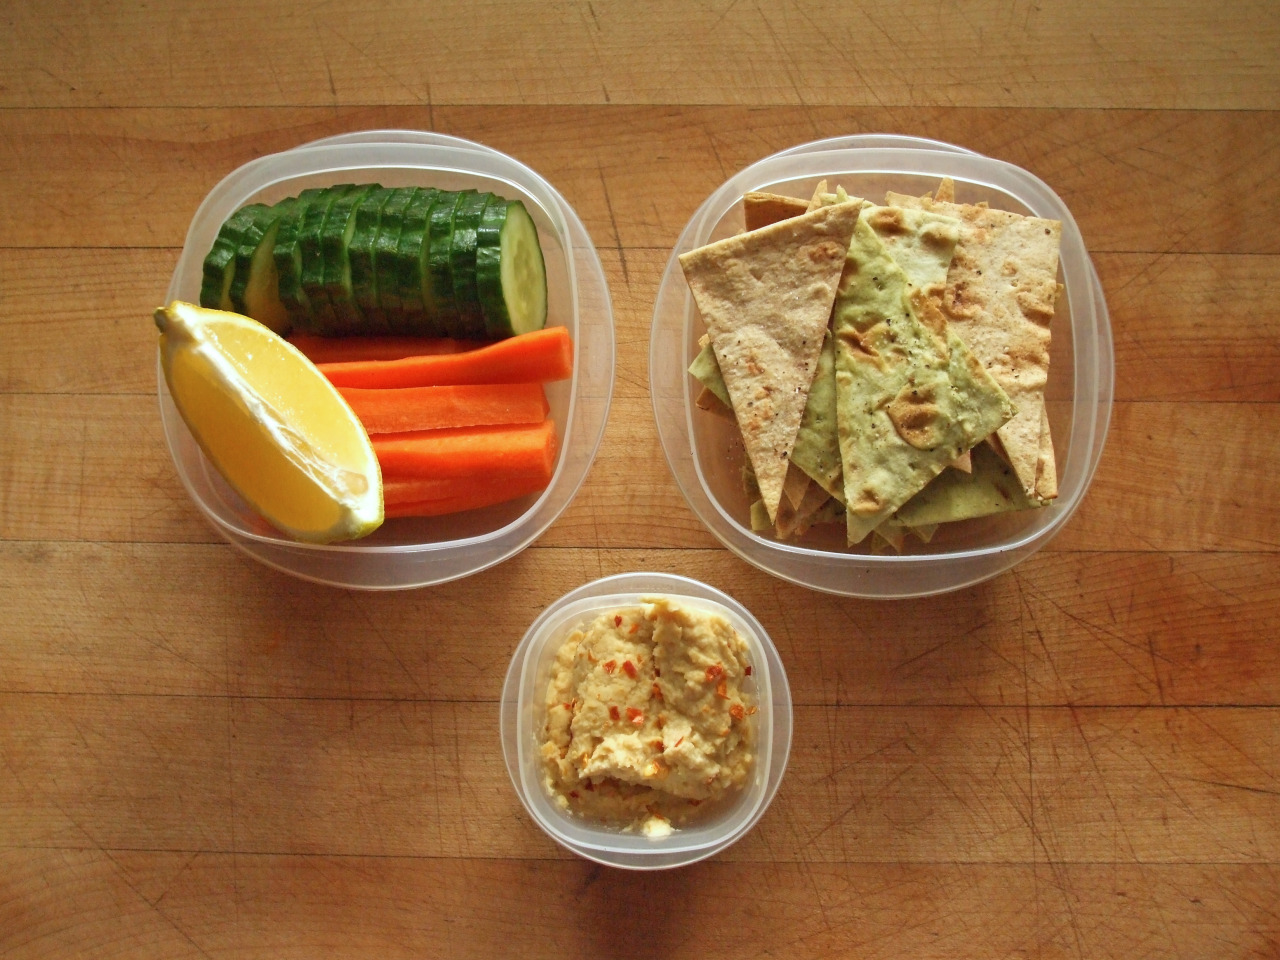 hellcatt:  garden-of-vegan:  cucumber and carrot with lemon and hummus, california lavash chips  yumm